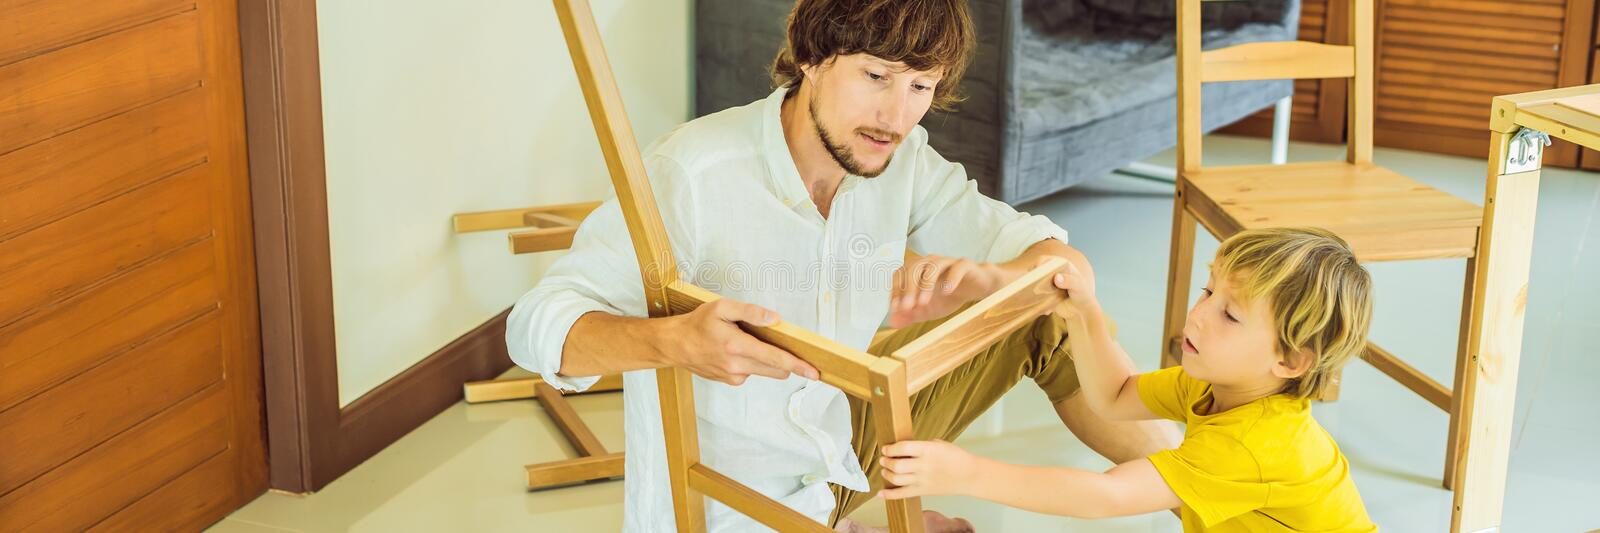 Father and son assembling furniture. Boy helping his dad at home. Happy Family concept BANNER, LONG FORMAT. Father and son assembling furniture. Boy helping his royalty free stock images